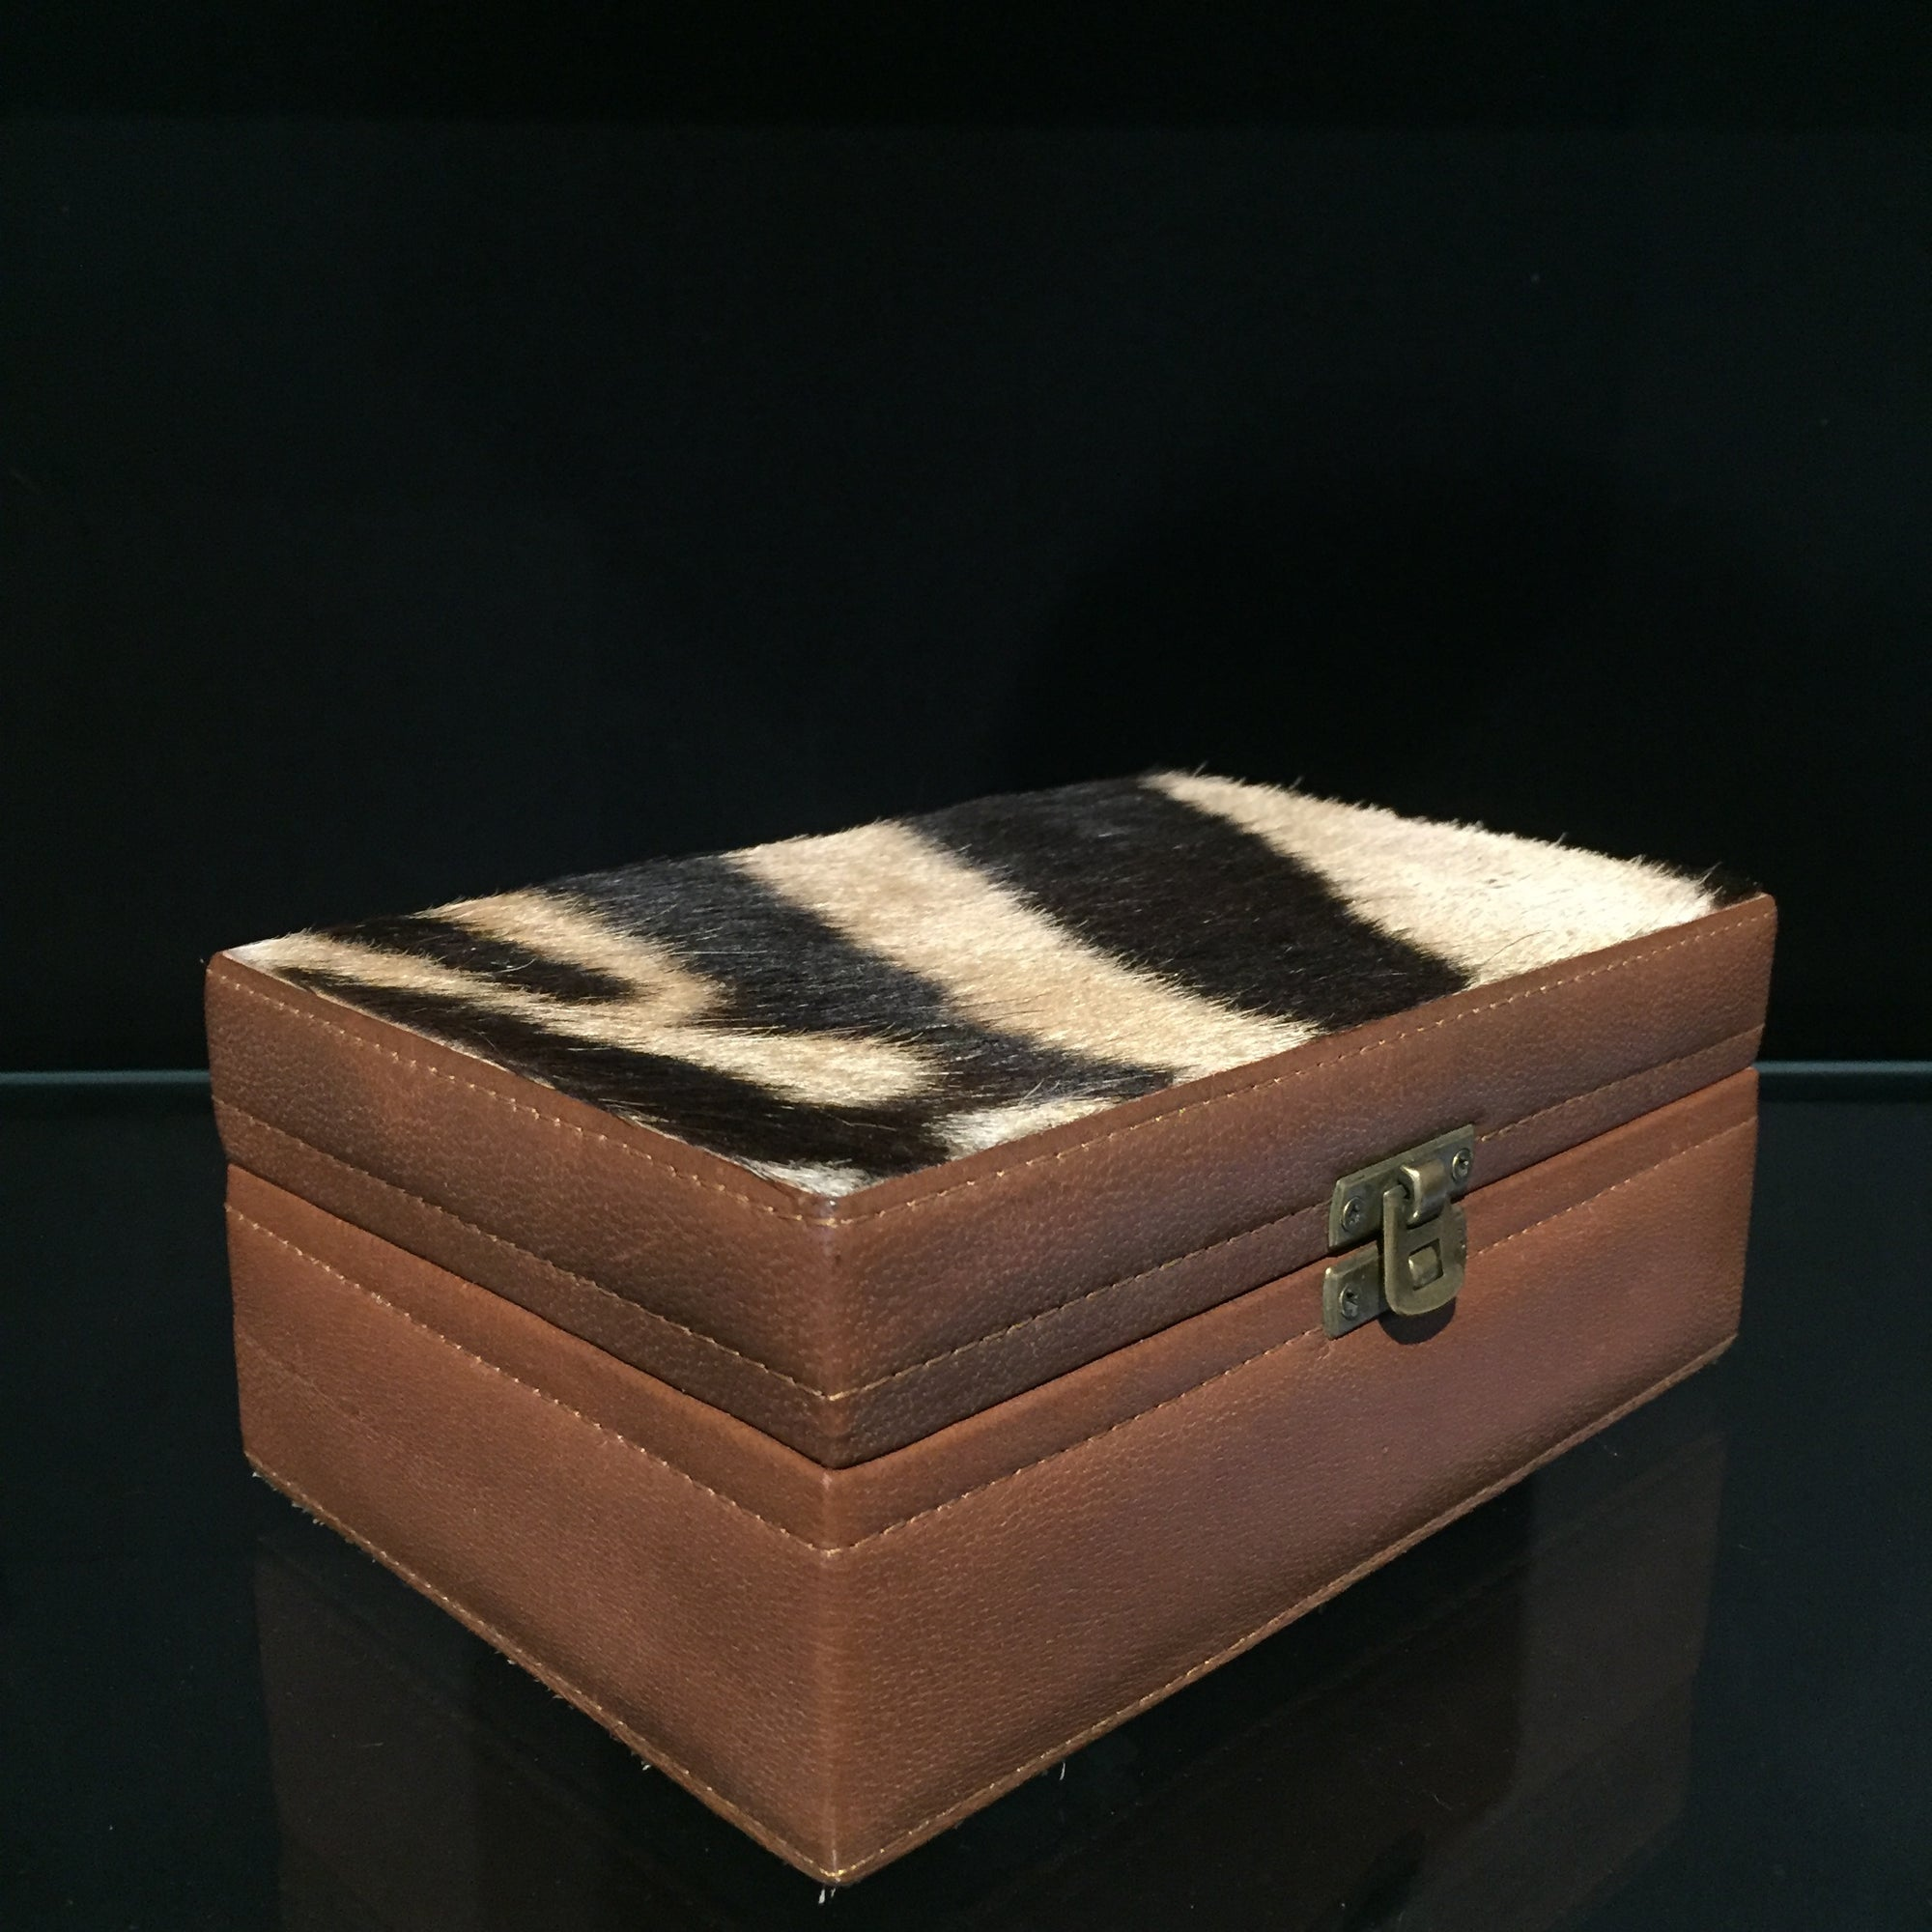 Zebra Skin Leather Box Small